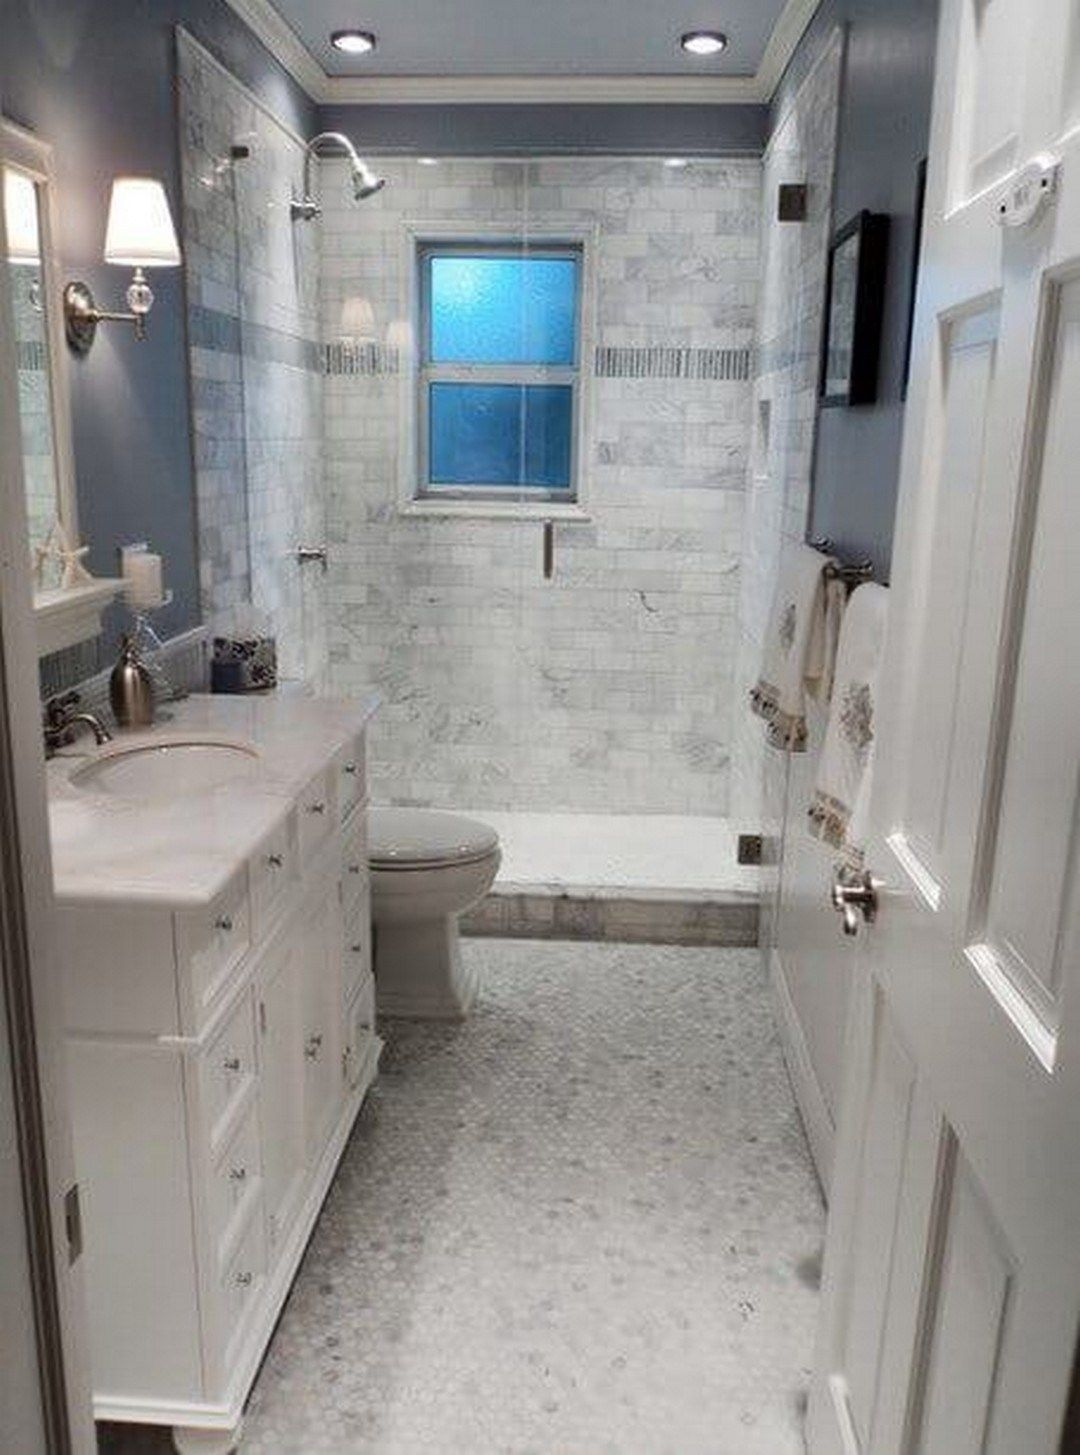 99 small master bathroom makeover ideas on a budget (66